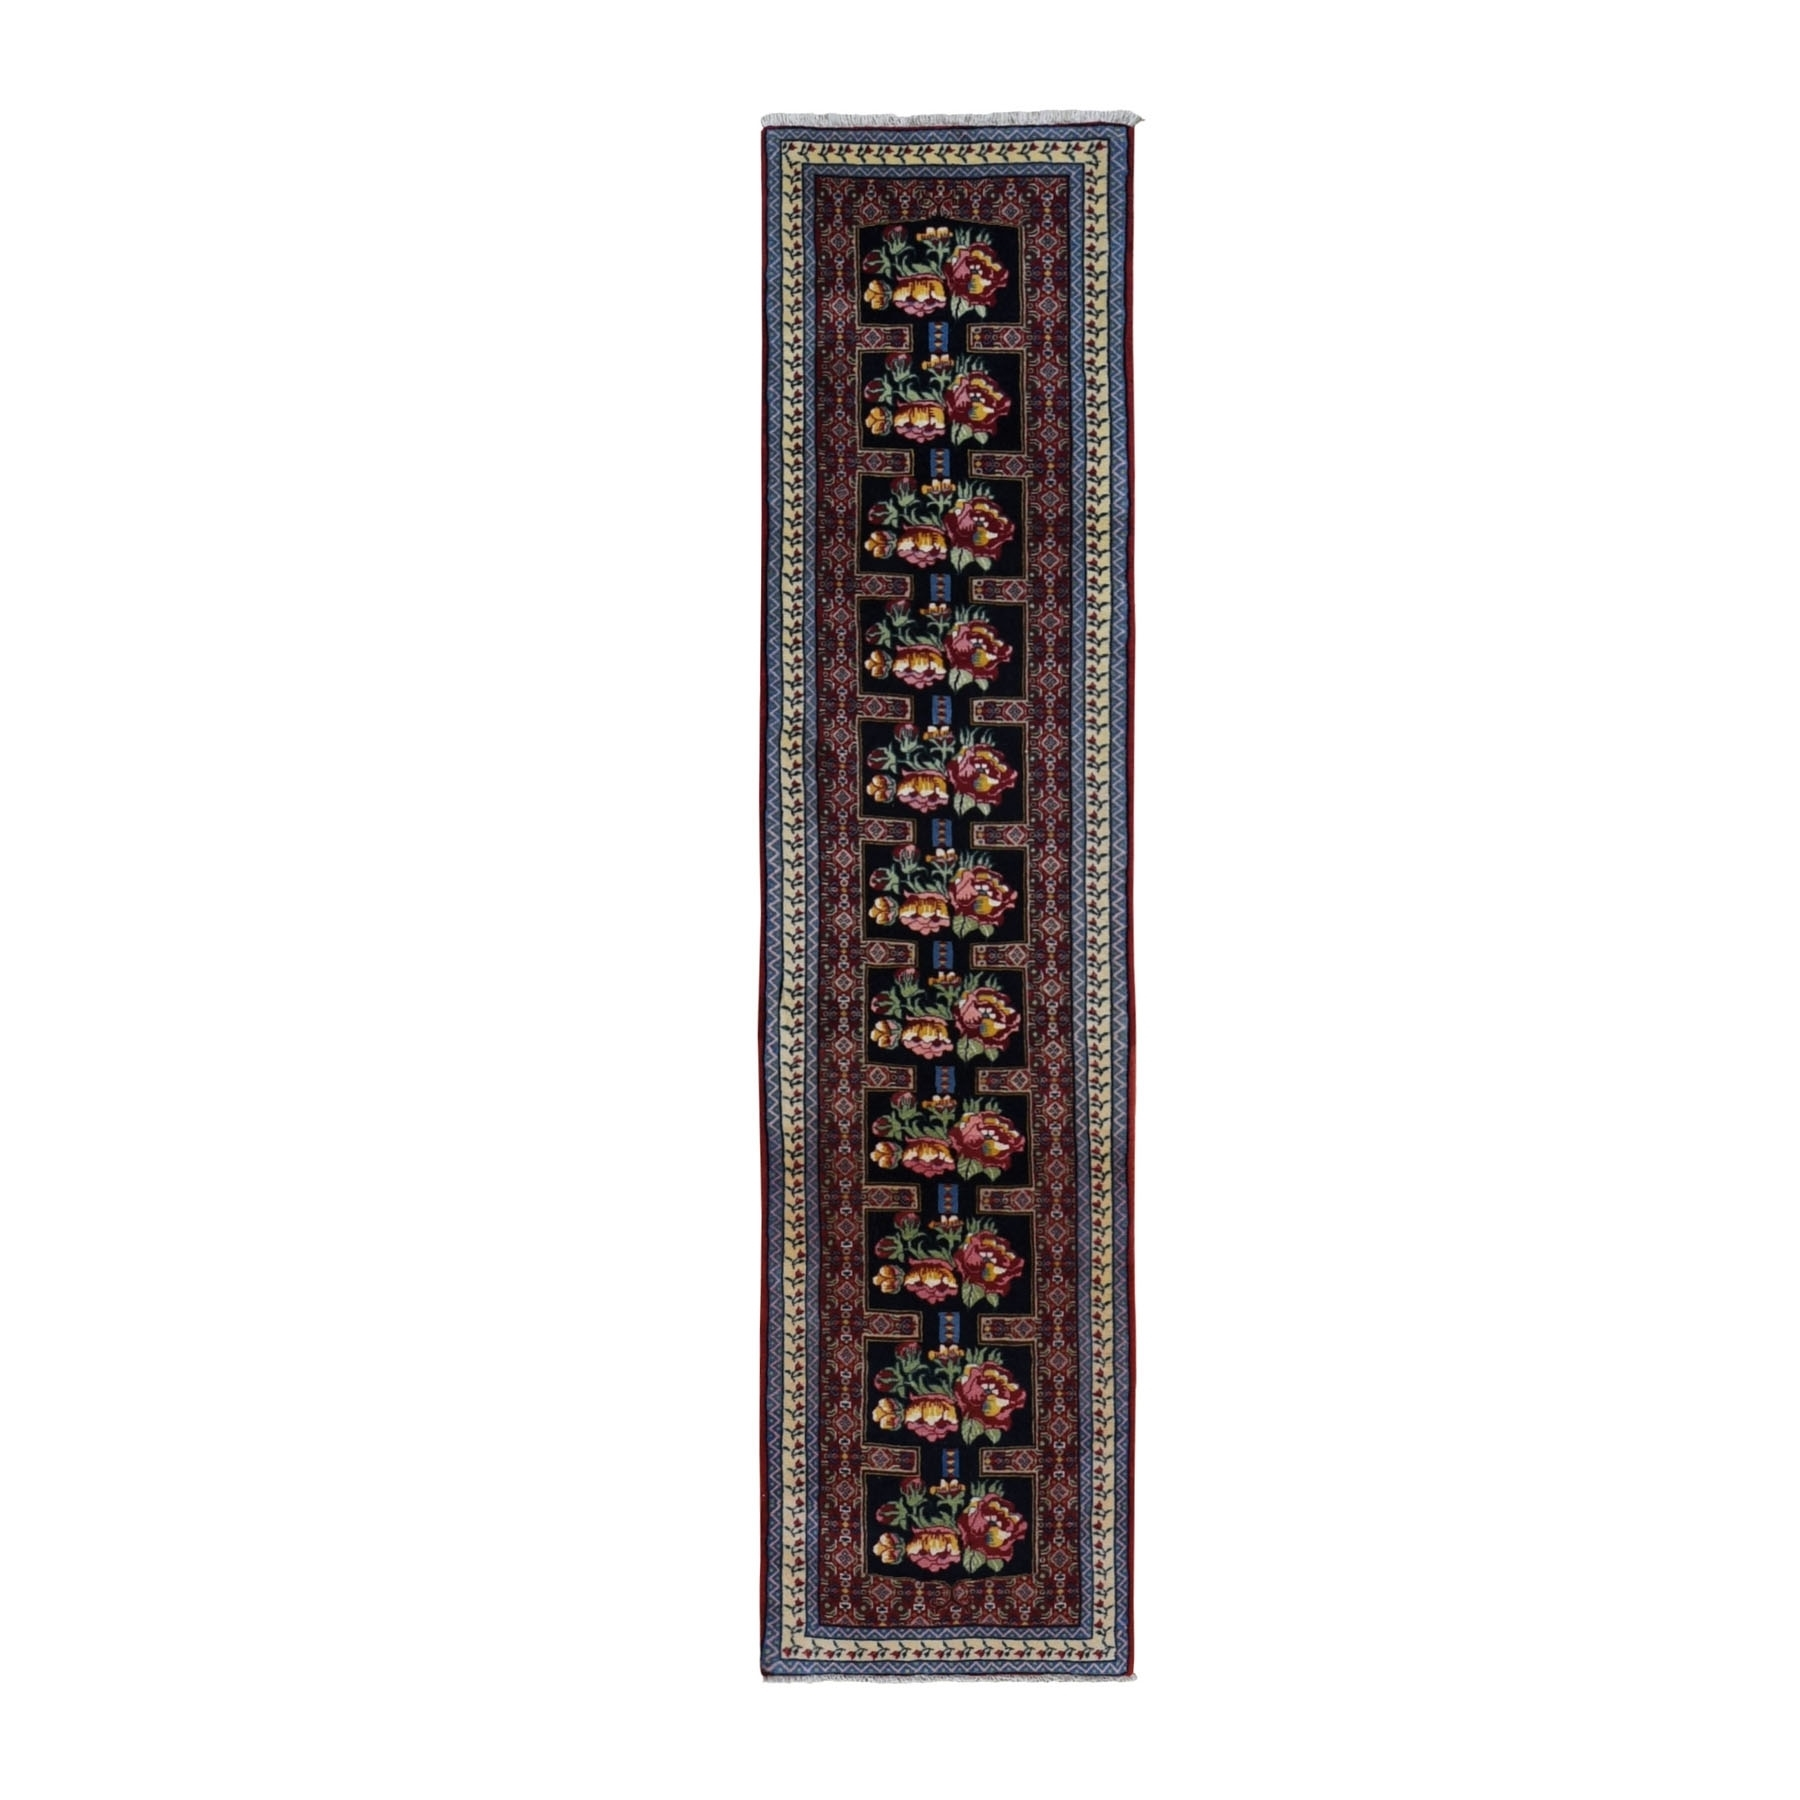 "2'x8'9"" Navy Blue New Persian Bijar Dense Weave Repetitive Flower Design Narrow Runner Rug"